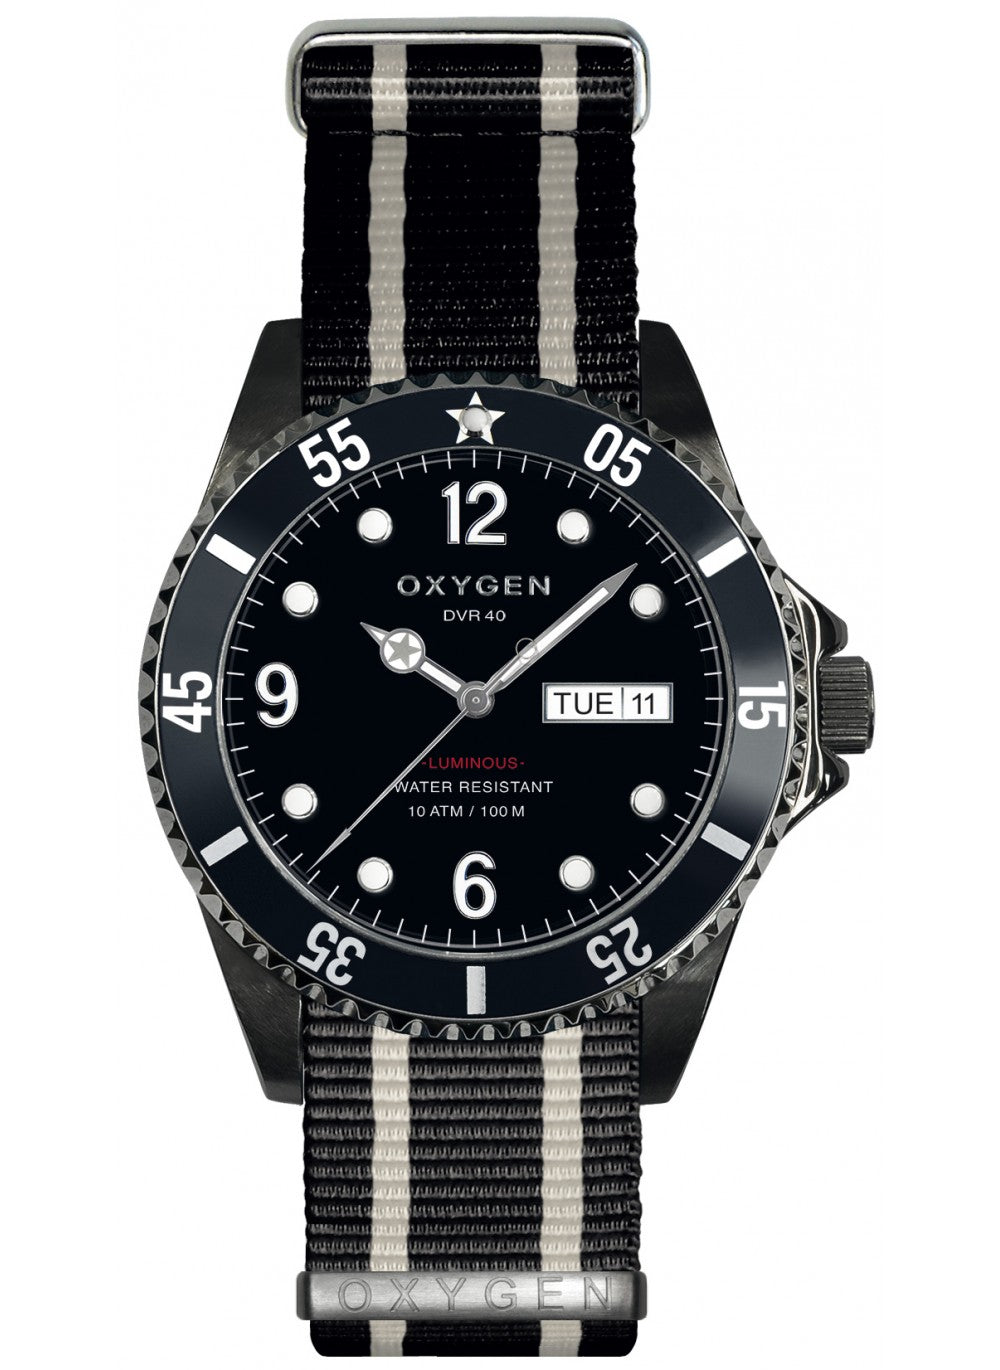 Montre Exchange Diver Moby Dick black 40 bracelet rayé noir, ivoire- oxygen watch